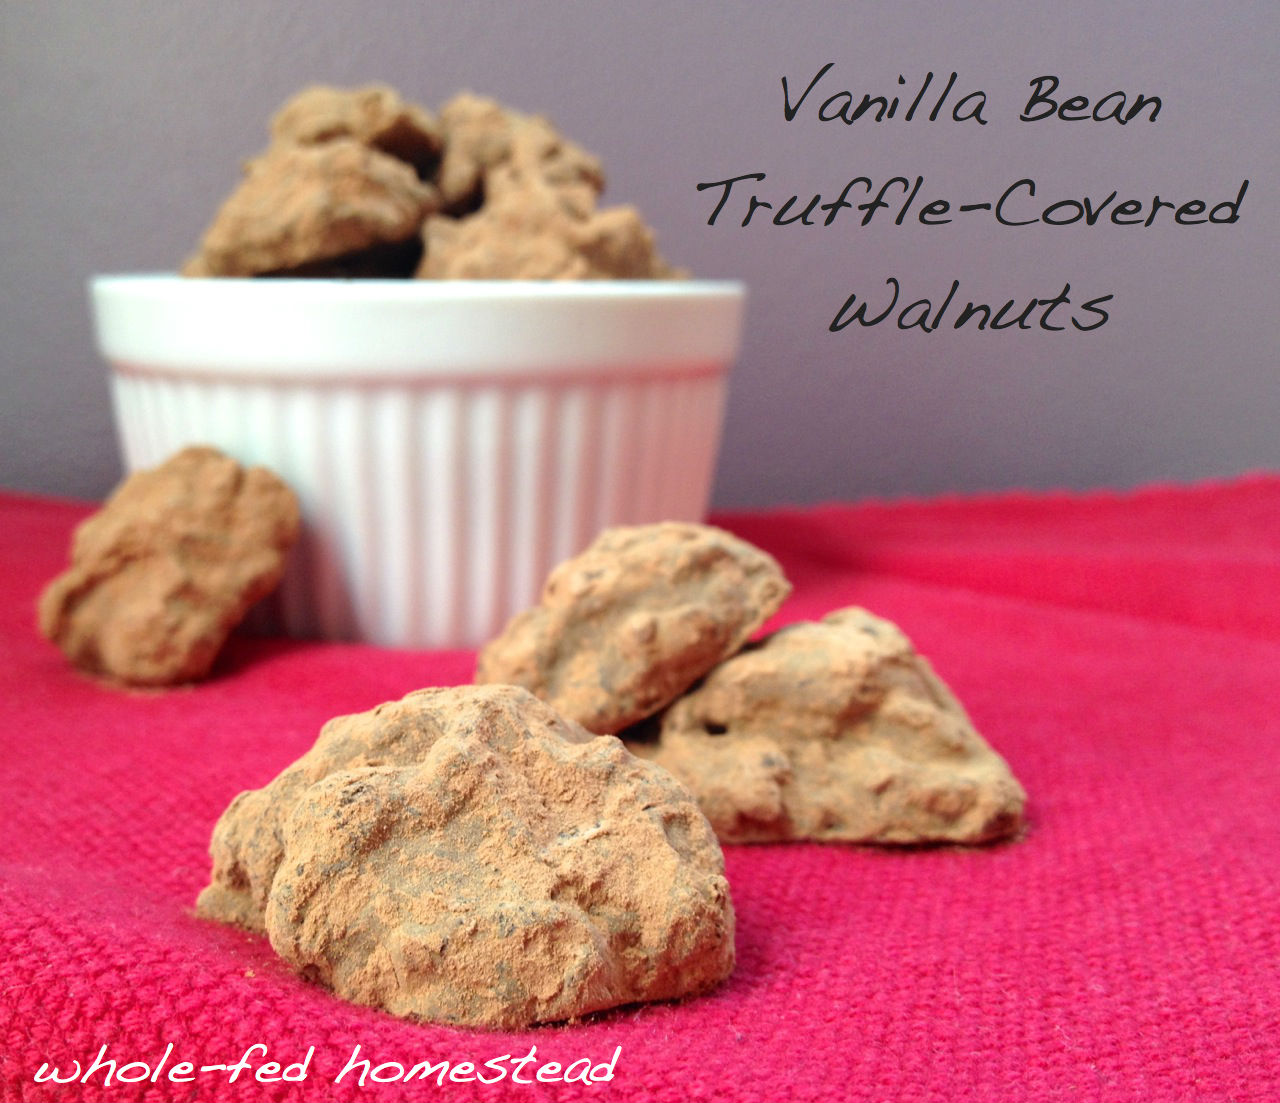 Vanilla Bean Truffle-Covered Walnuts for Valentine's Day